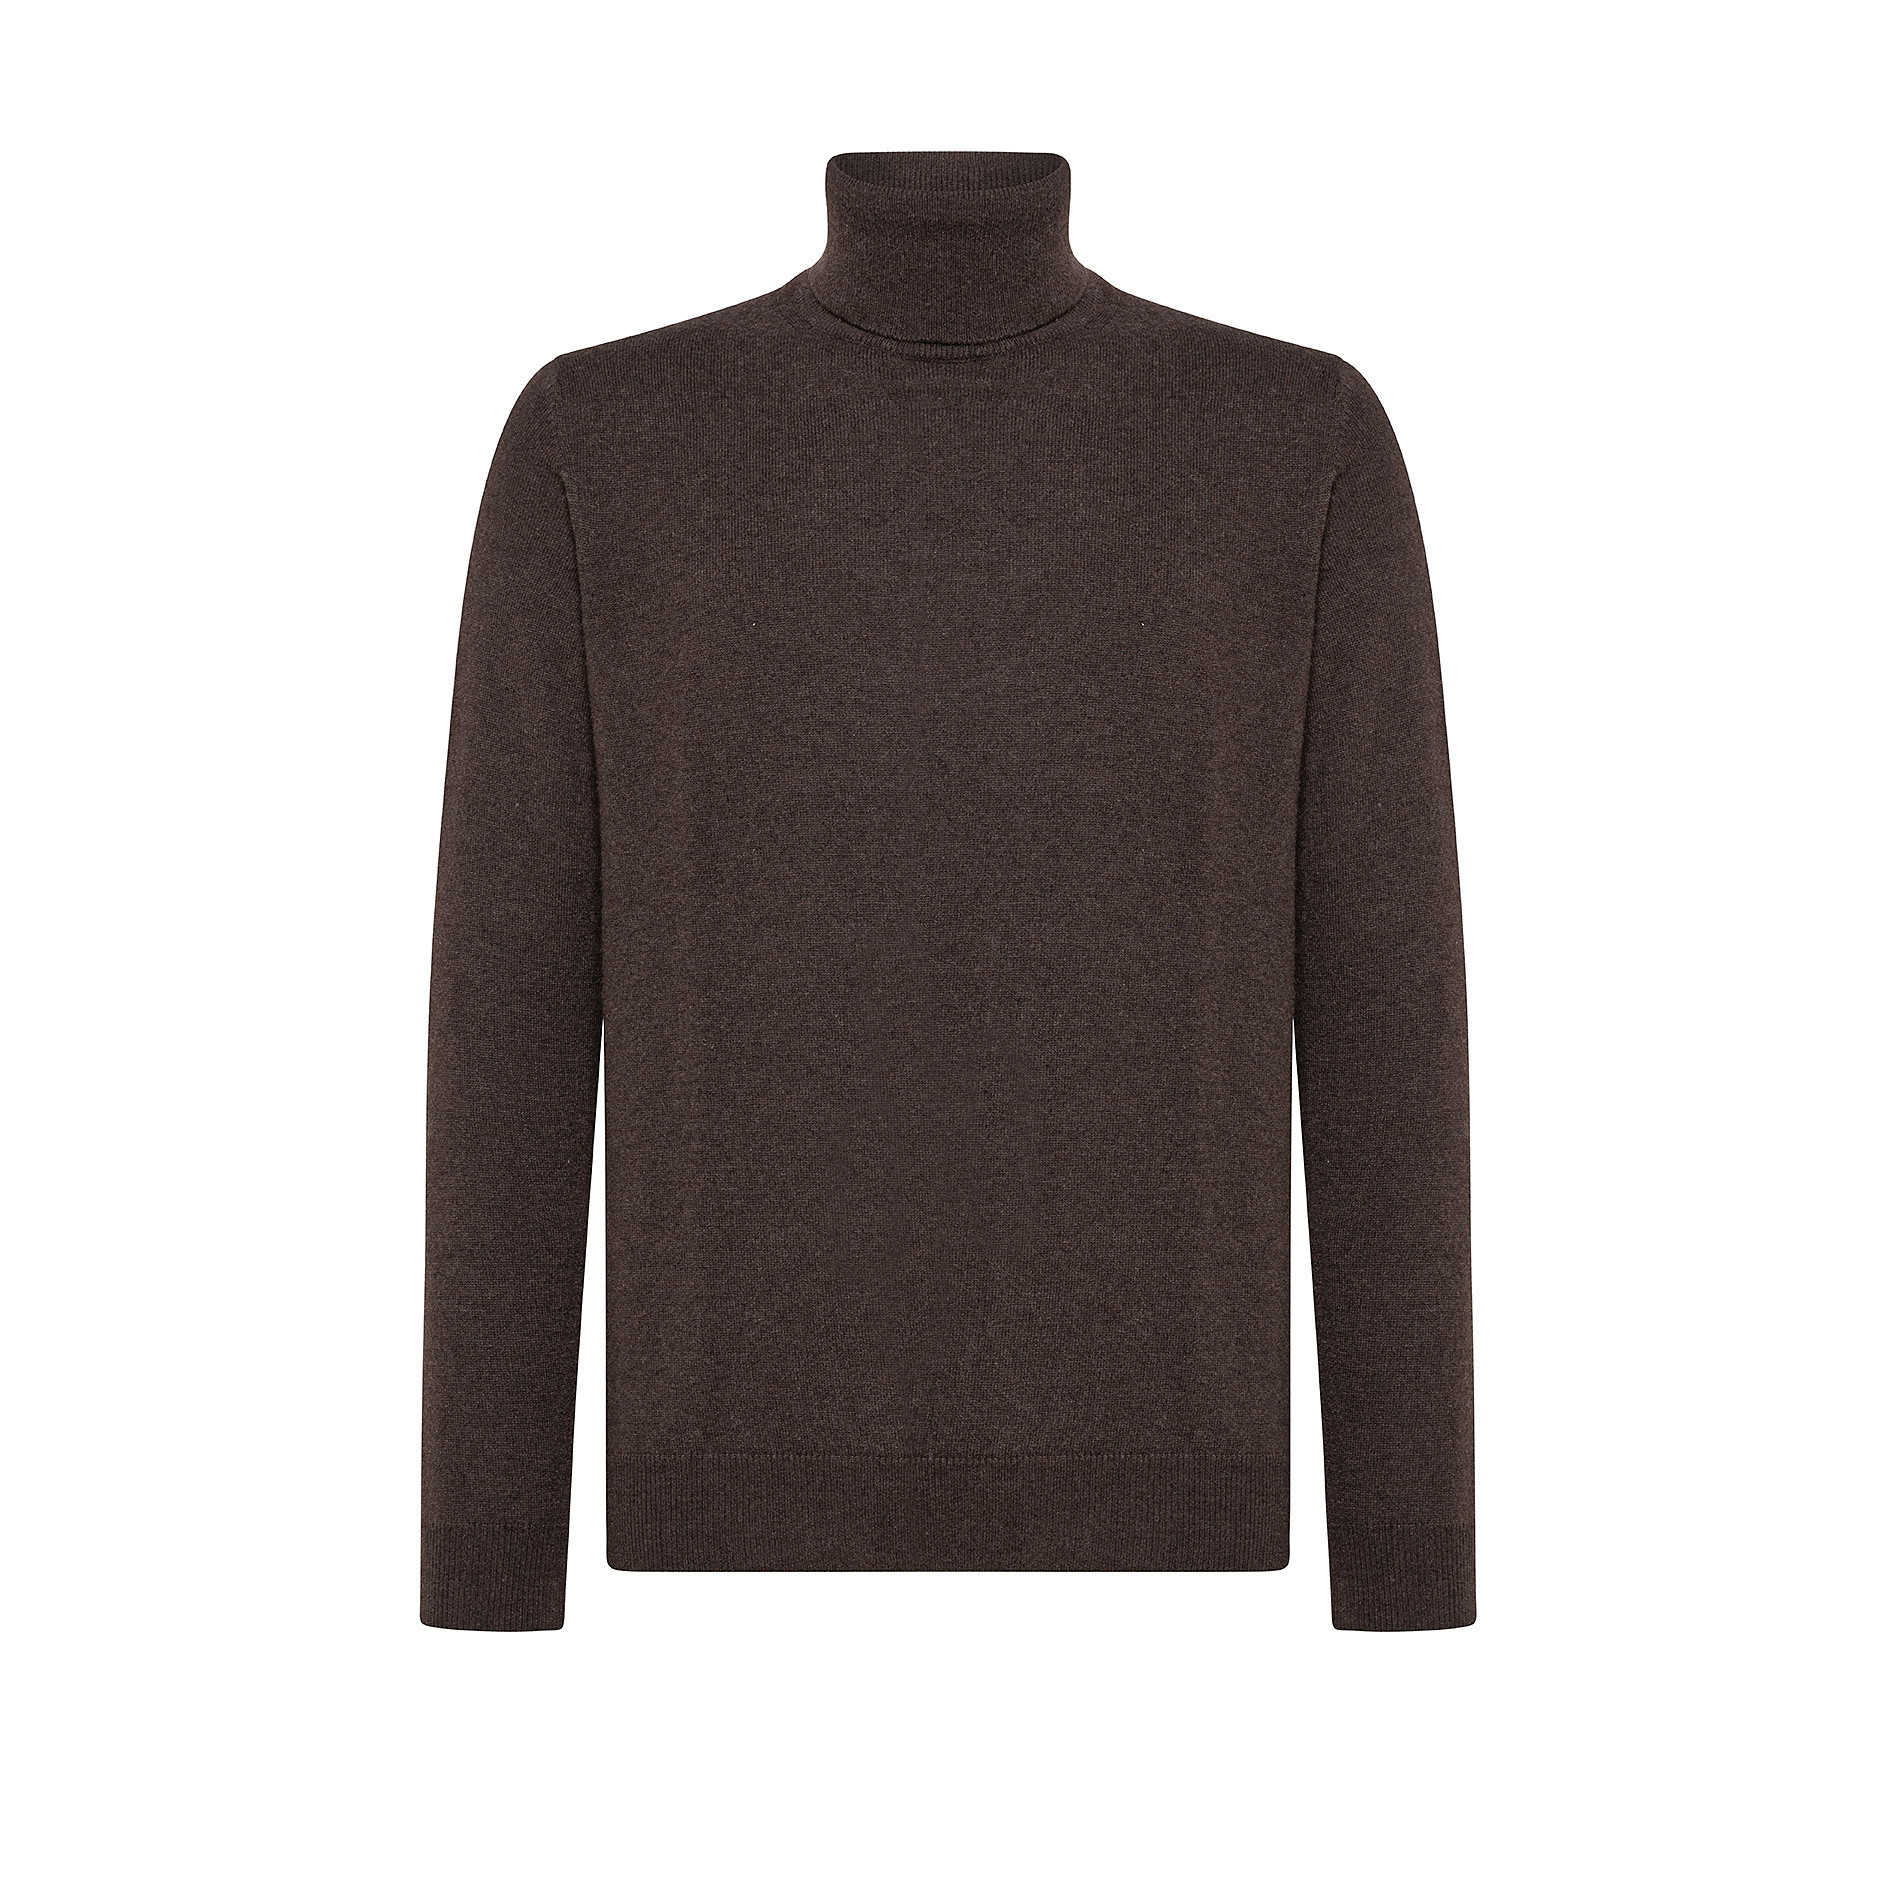 Pullover collo alto in cashmere blend, Marrone, large image number 1